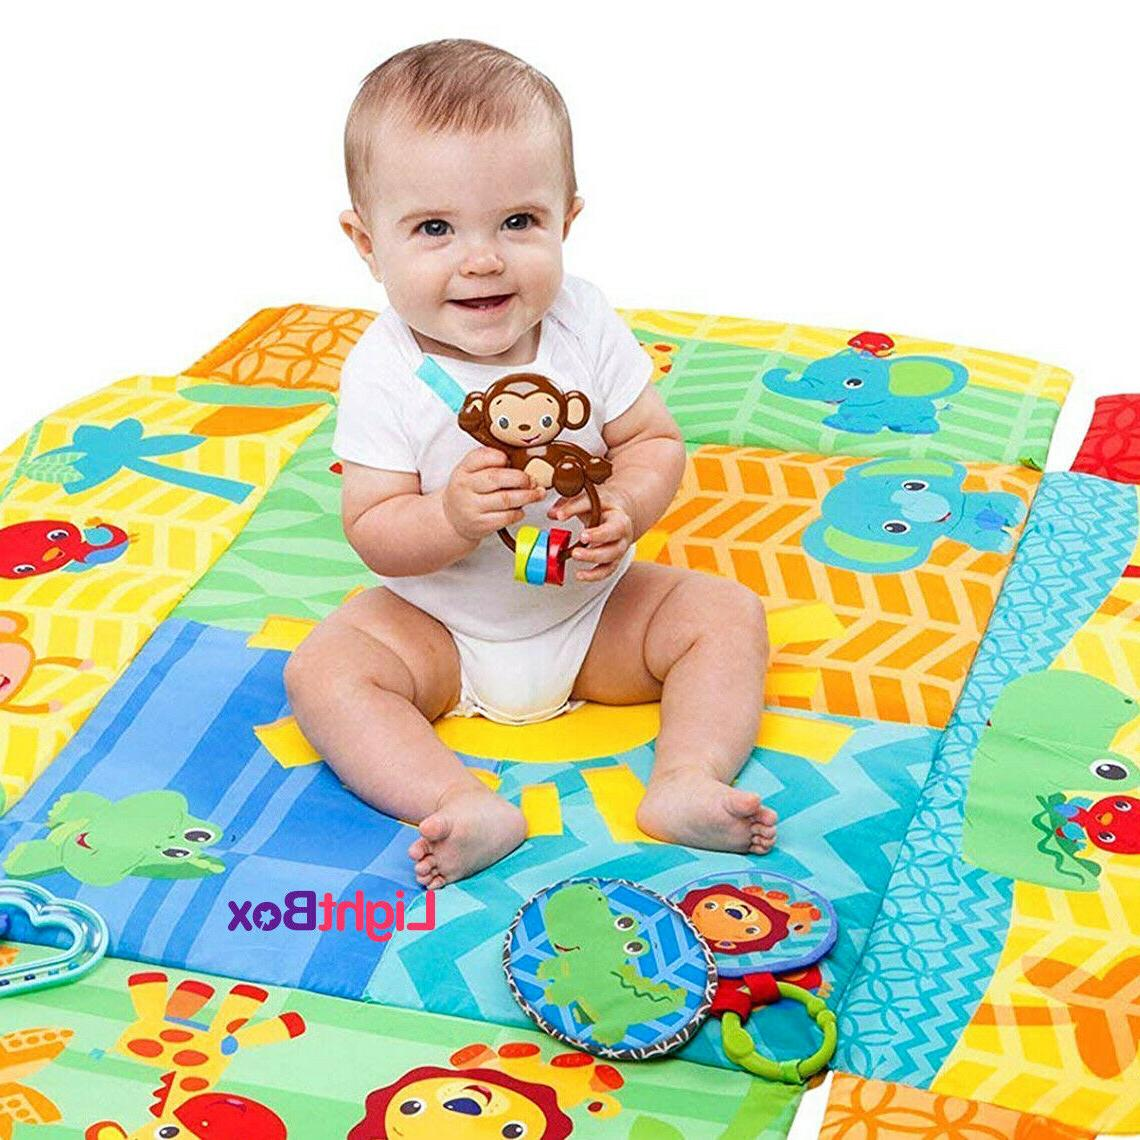 Toy Baby Crib Educational Travel for N